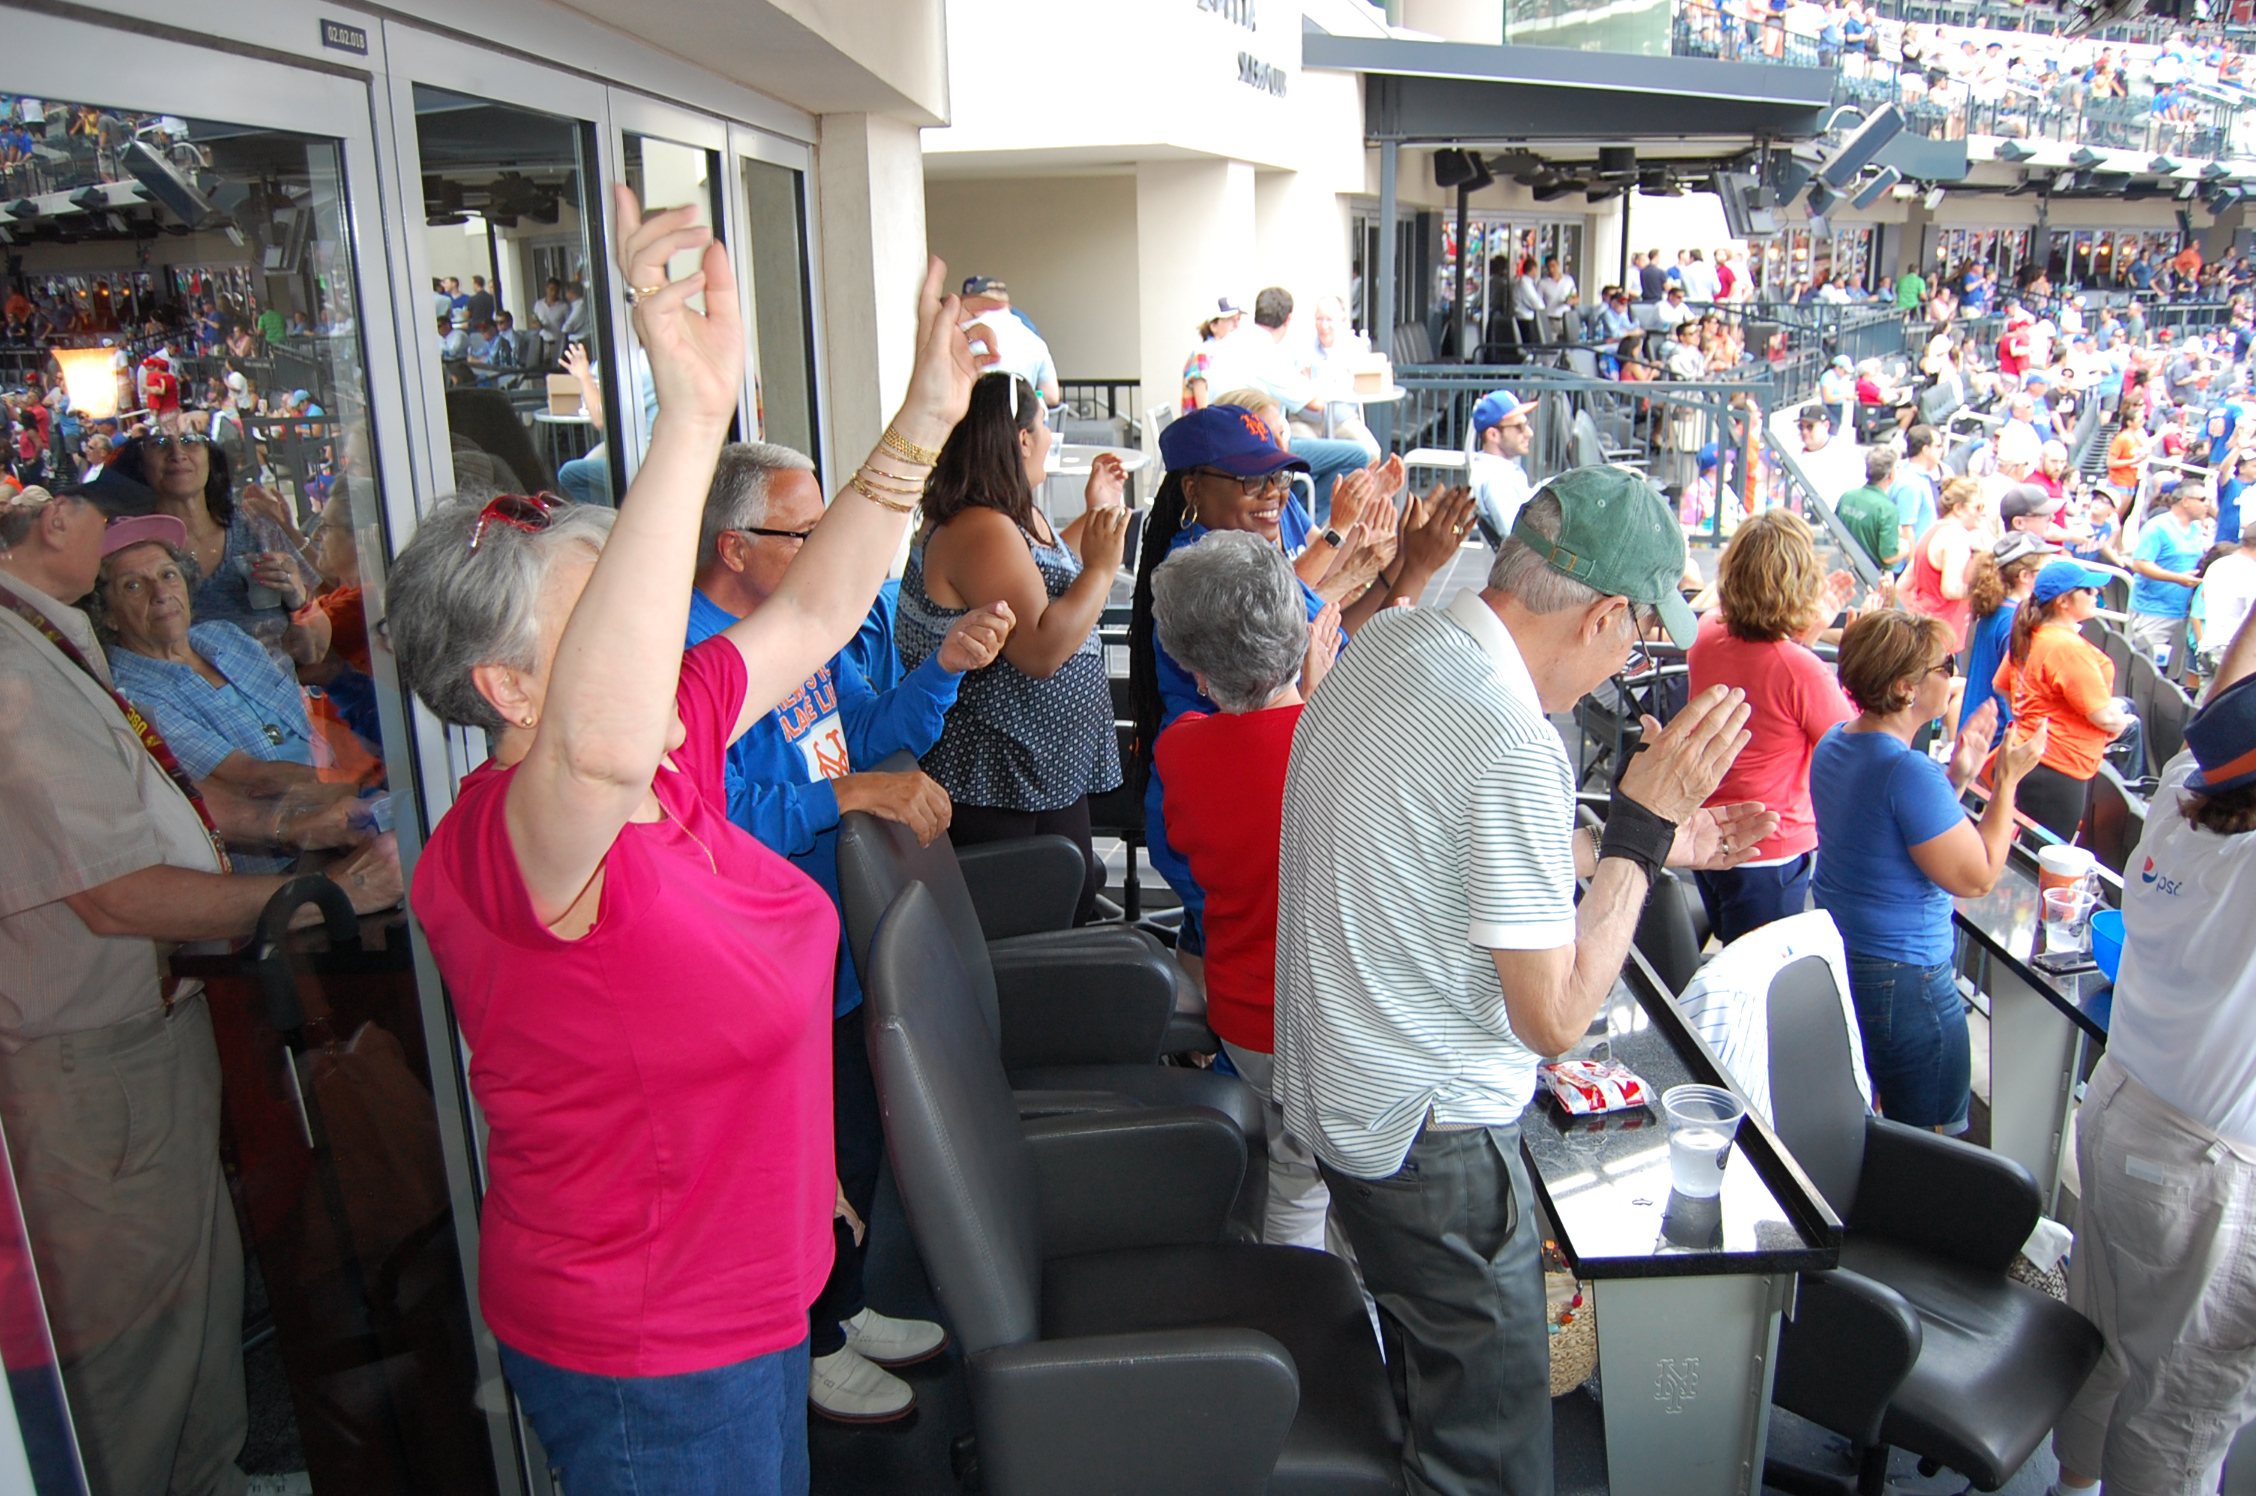 Participants and staff from the River House Adult Care Center in Cos Cobb, Connecticut, cheering on the New York Mets at Citi Field in New York City, as part of the Baseball Reminiscence Program. (Kenneth Best/UConn Photo)